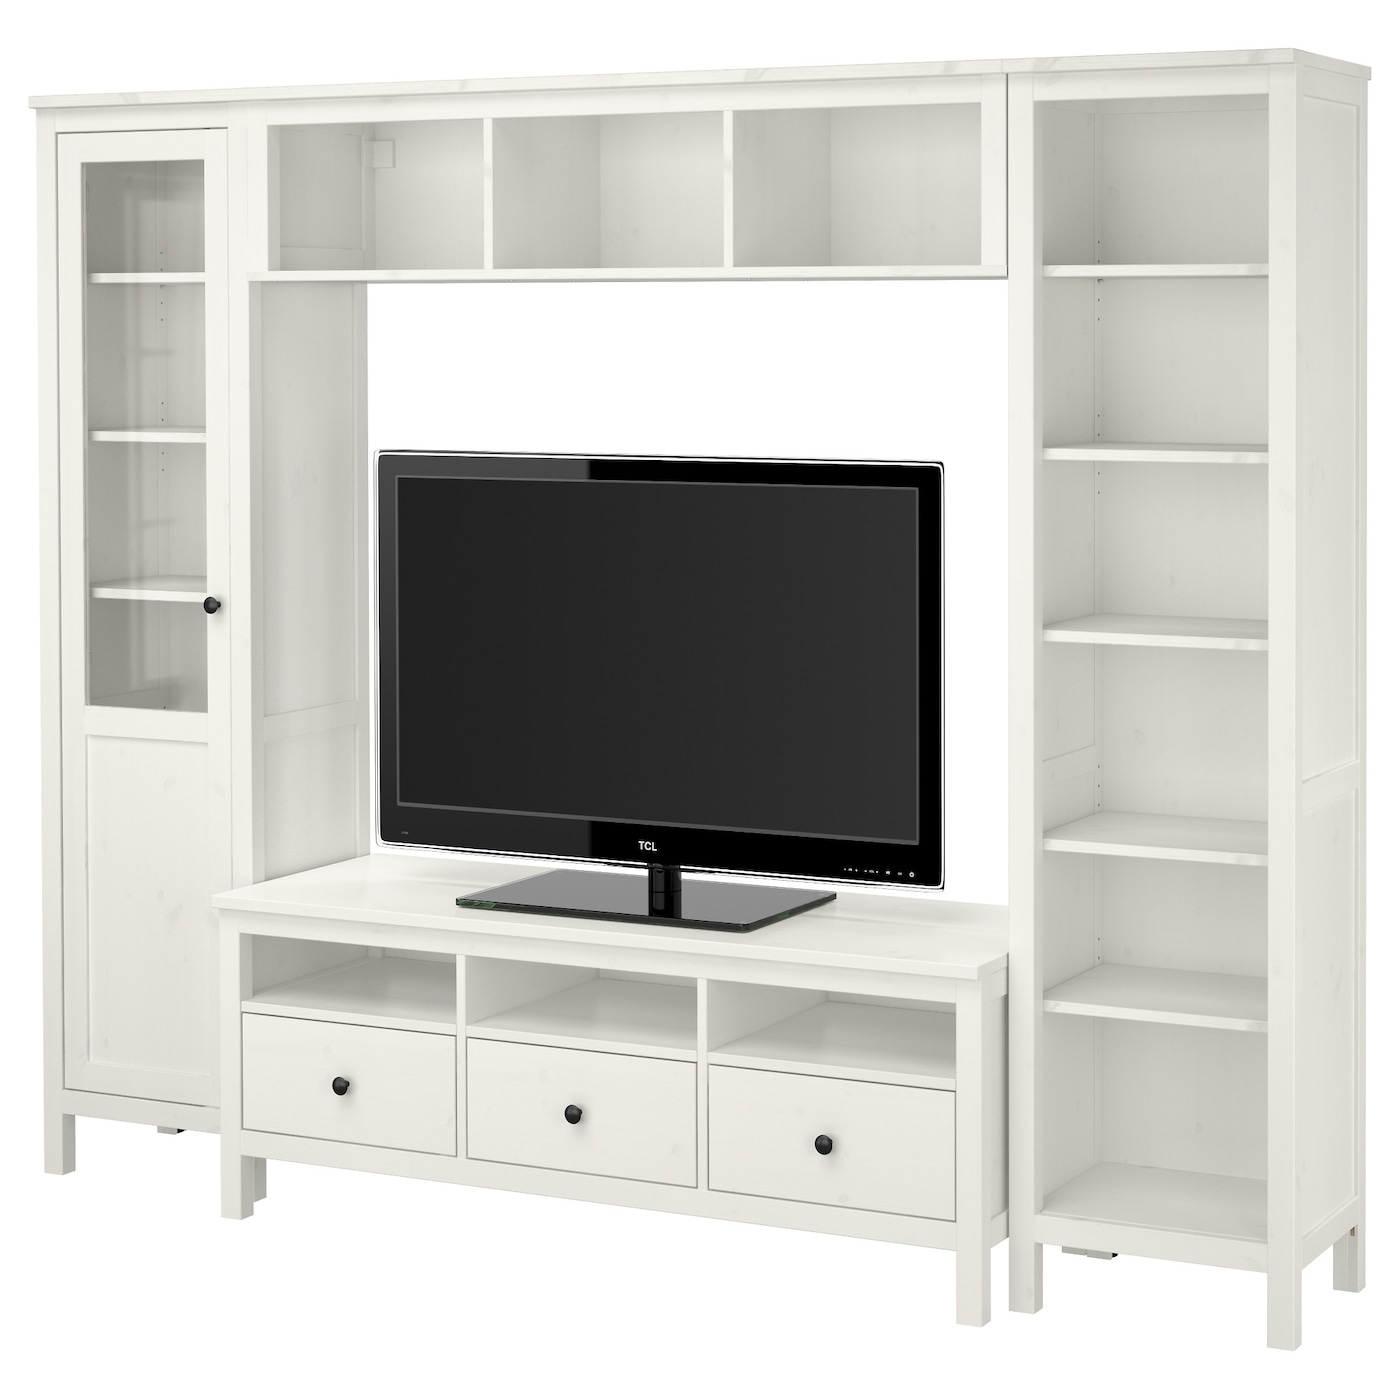 Hemnes Tv Storage Combination White Stain 246x197 Cm Ikea